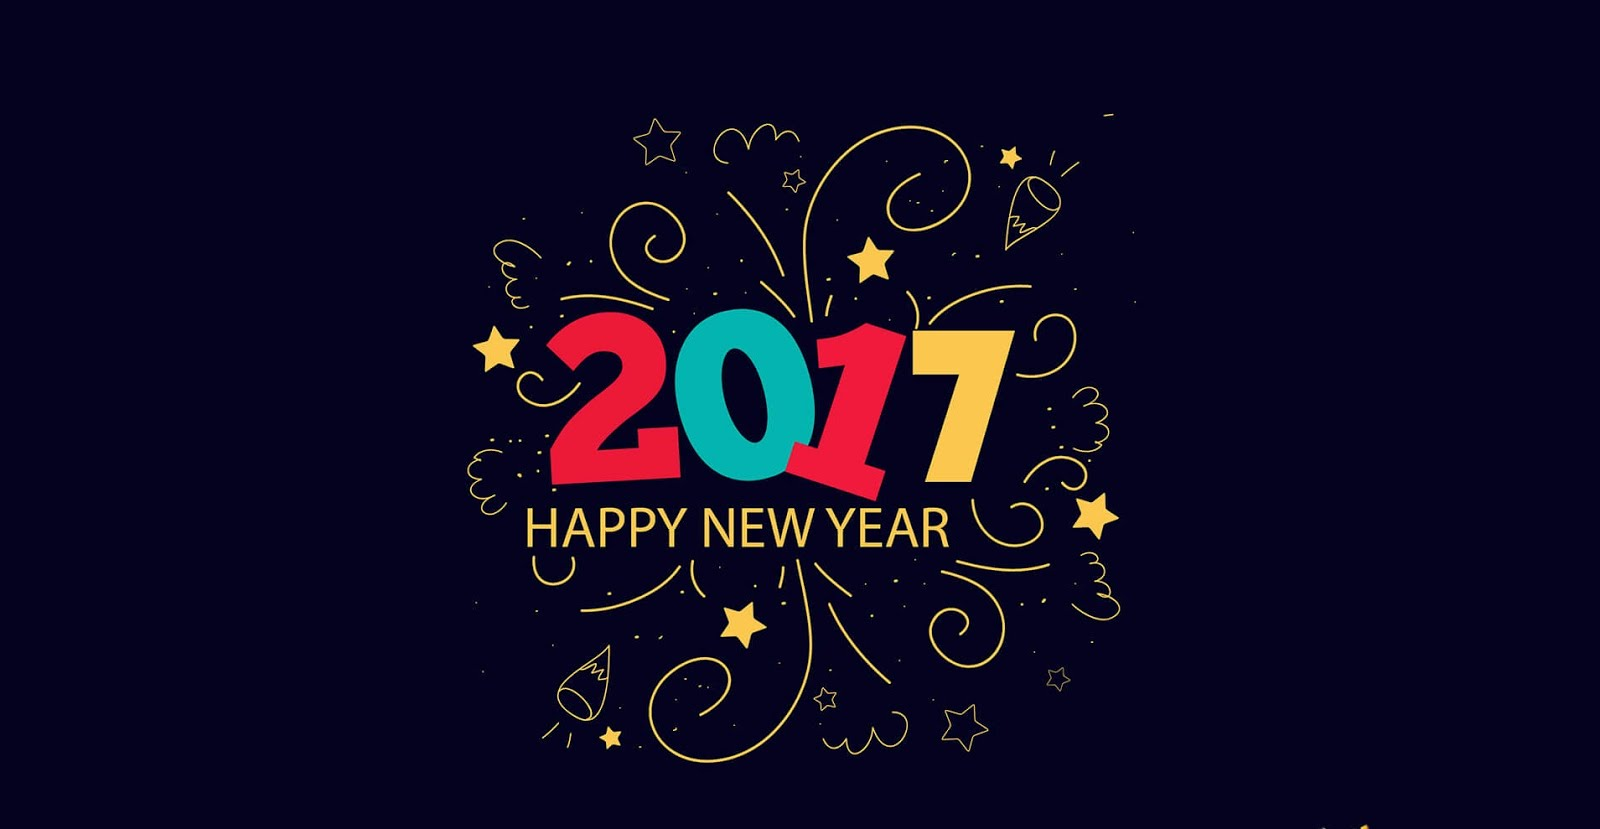 happy new year 2017 messages wishes